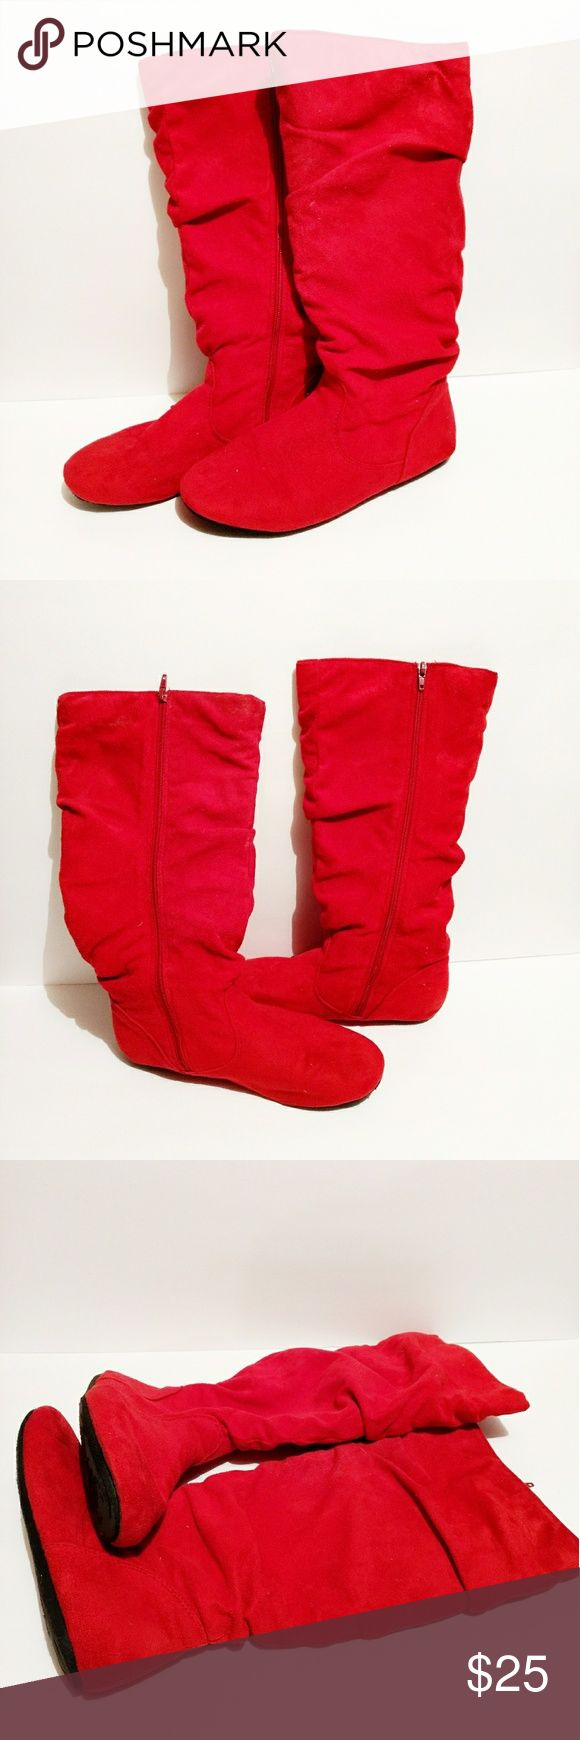 Cute Red Zip Up Boots Good Condition Red Zip Up Boots One of the boots the sole is messed up but nothing is wrong on the outside of either boot. Bought at Shoe Show Shoes Winter & Rain Boots